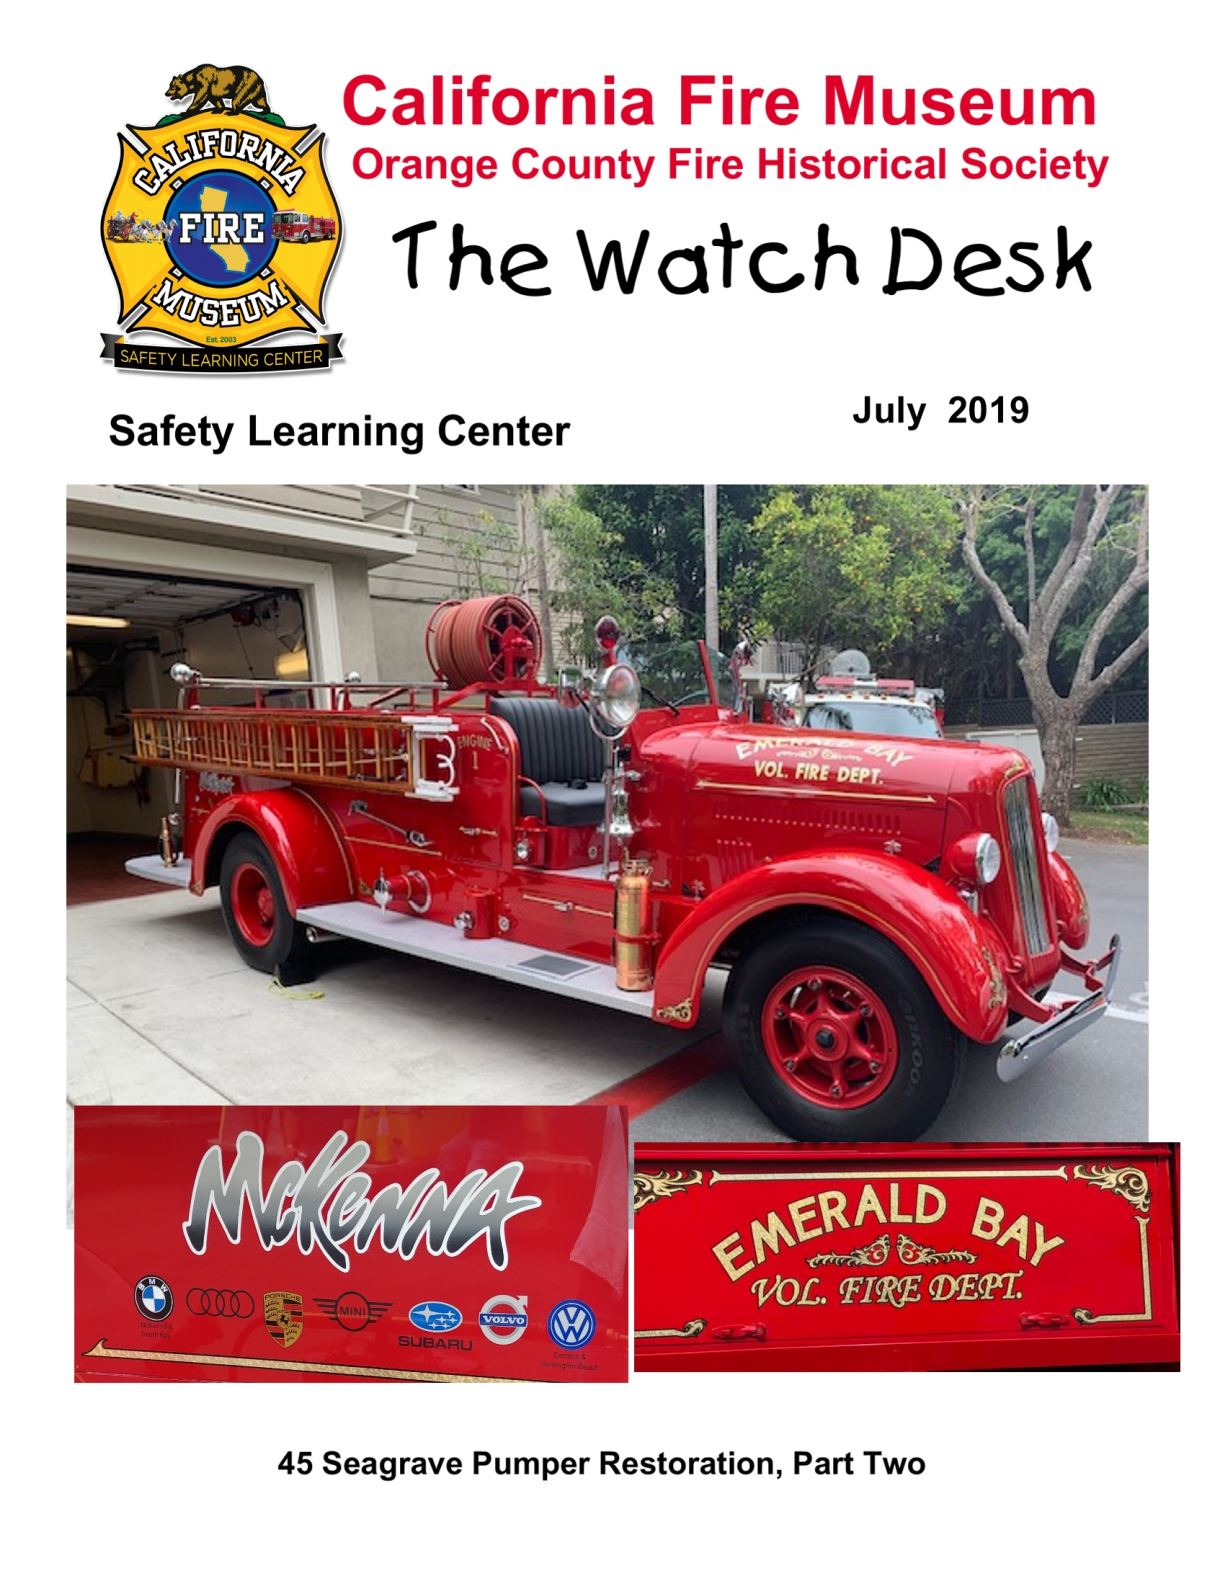 California Fire Museum Safety Learning Center At The Orange County